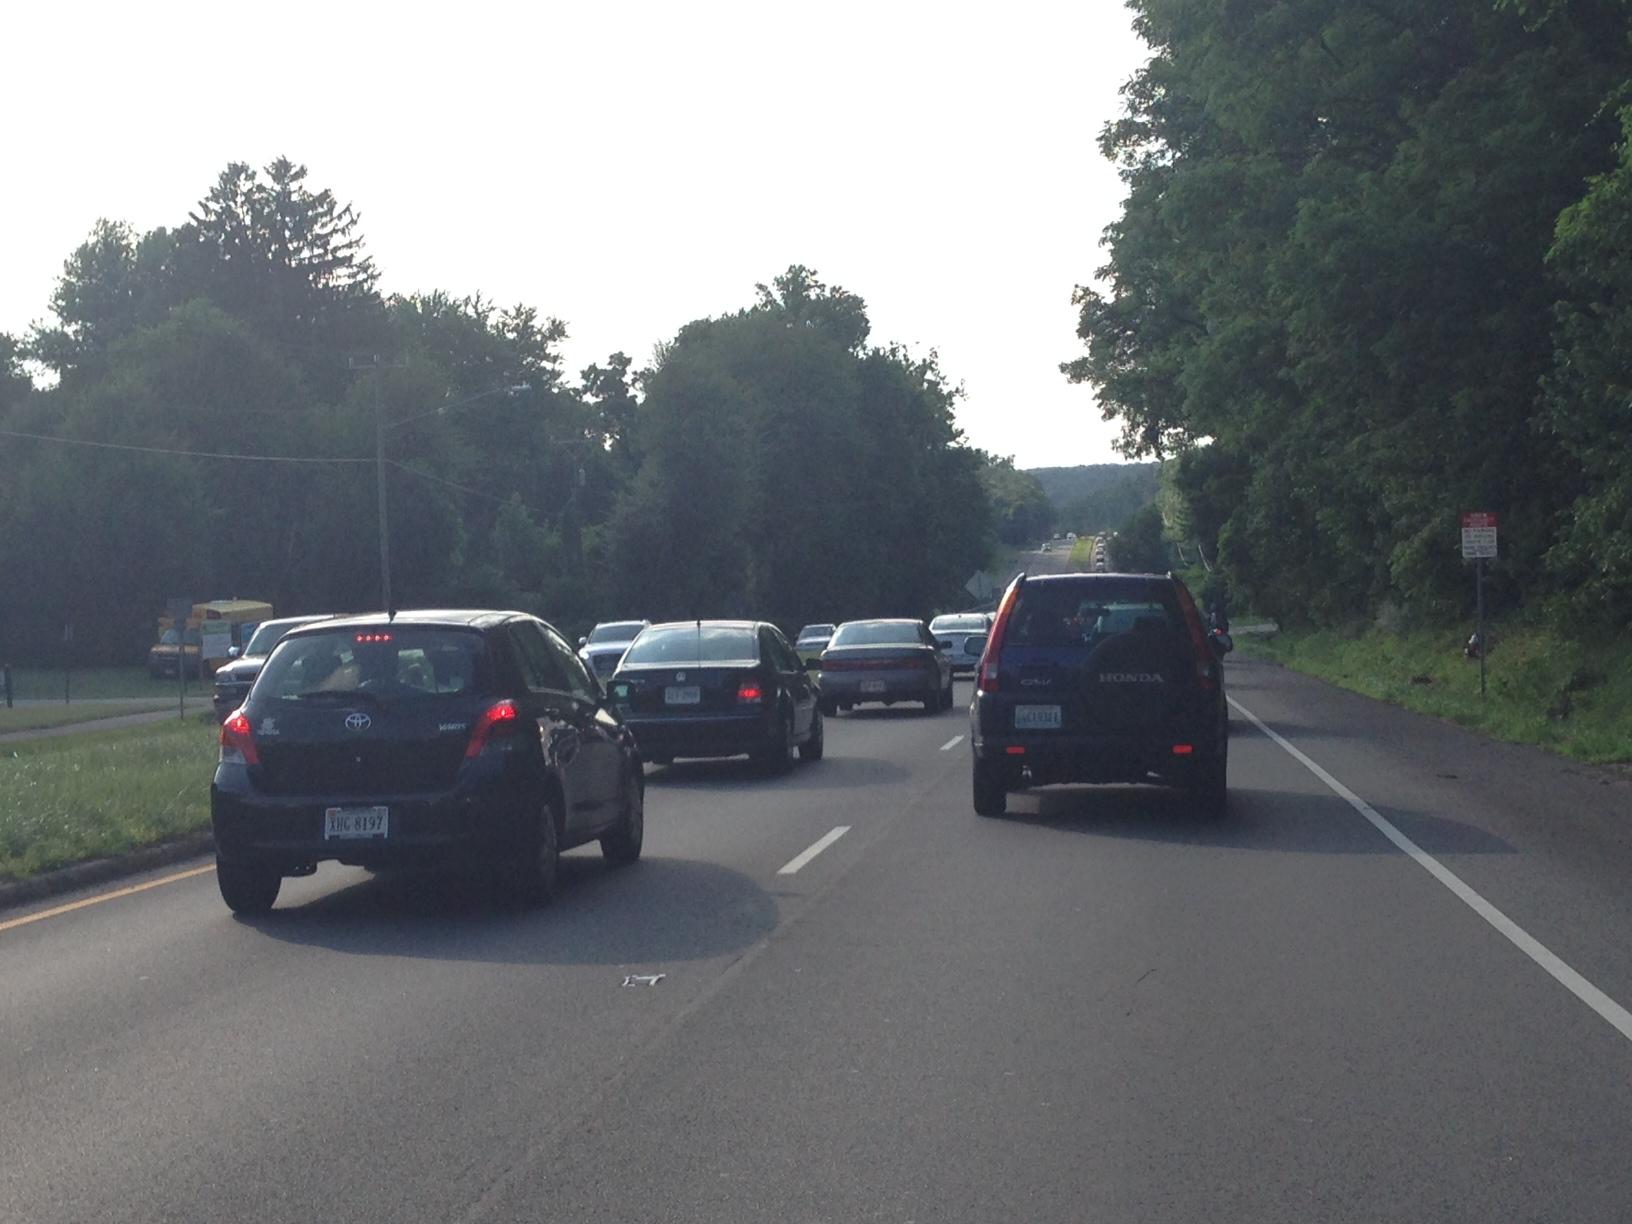 Va. 7 widening poised to move forward at expense of new Loudoun project